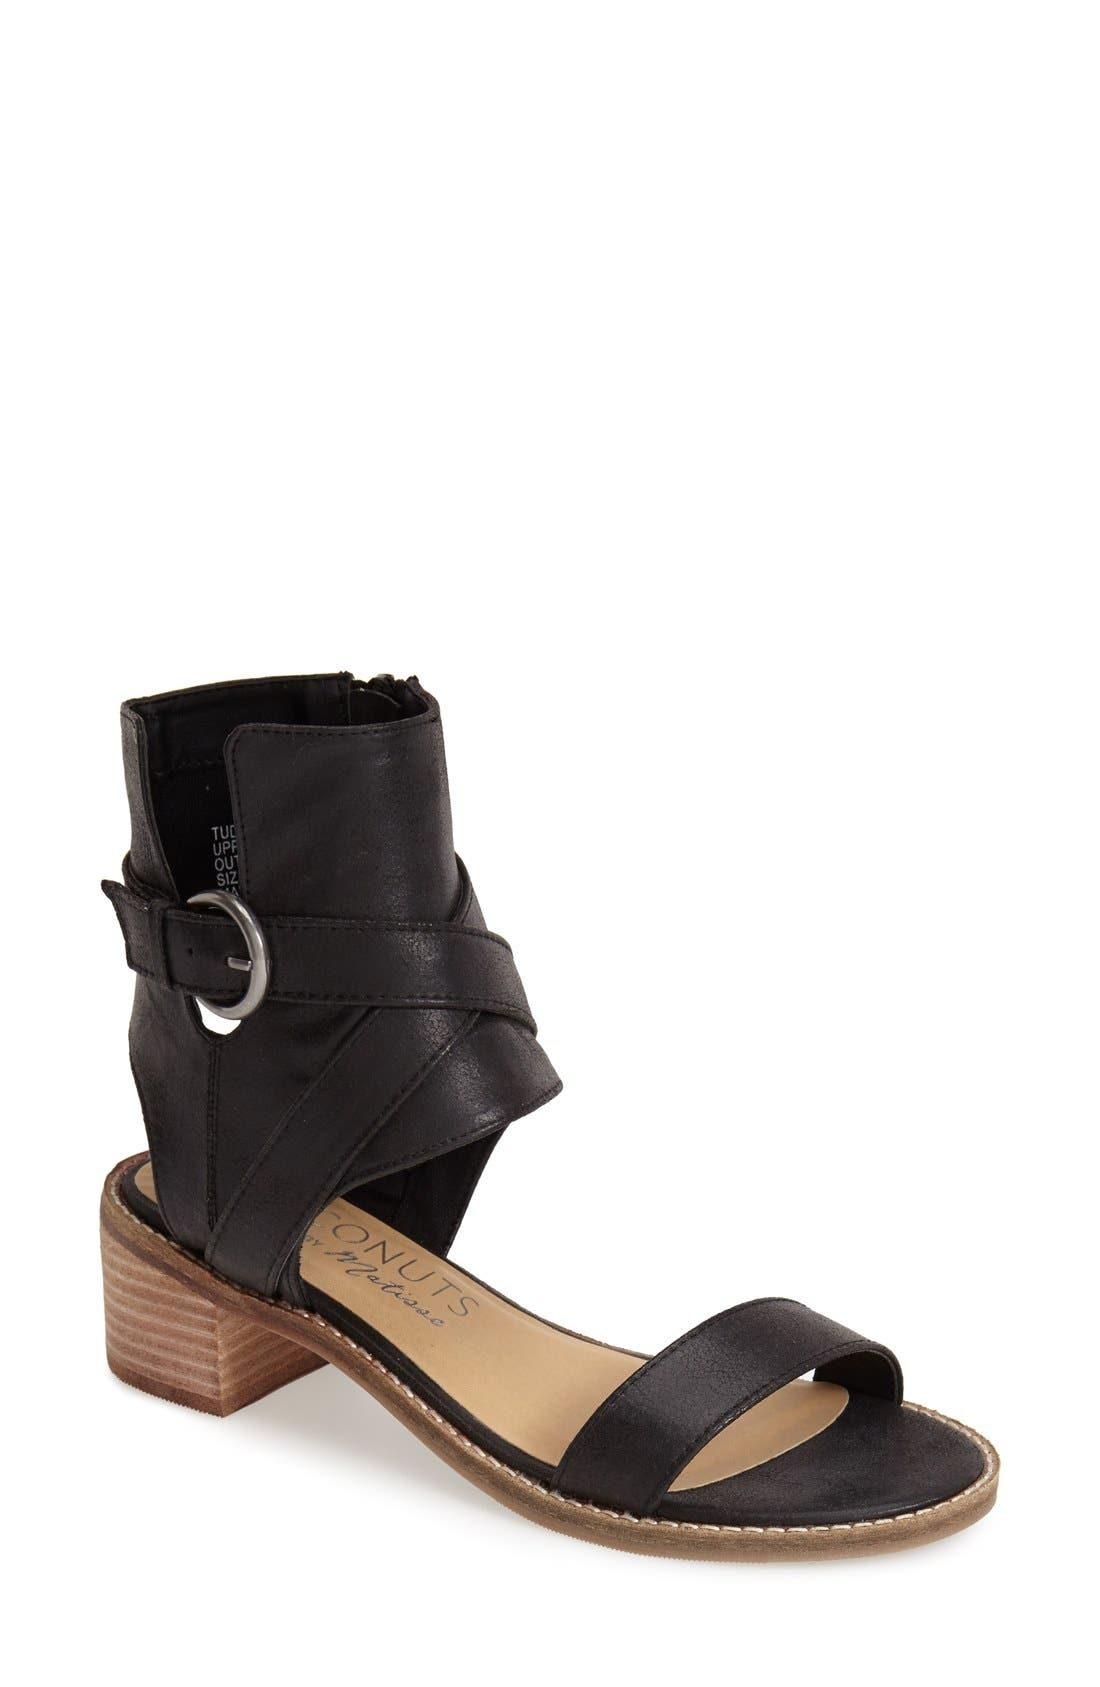 Main Image - Coconuts by Matisse 'Tudor' Ankle Cuff Sandal (Women)